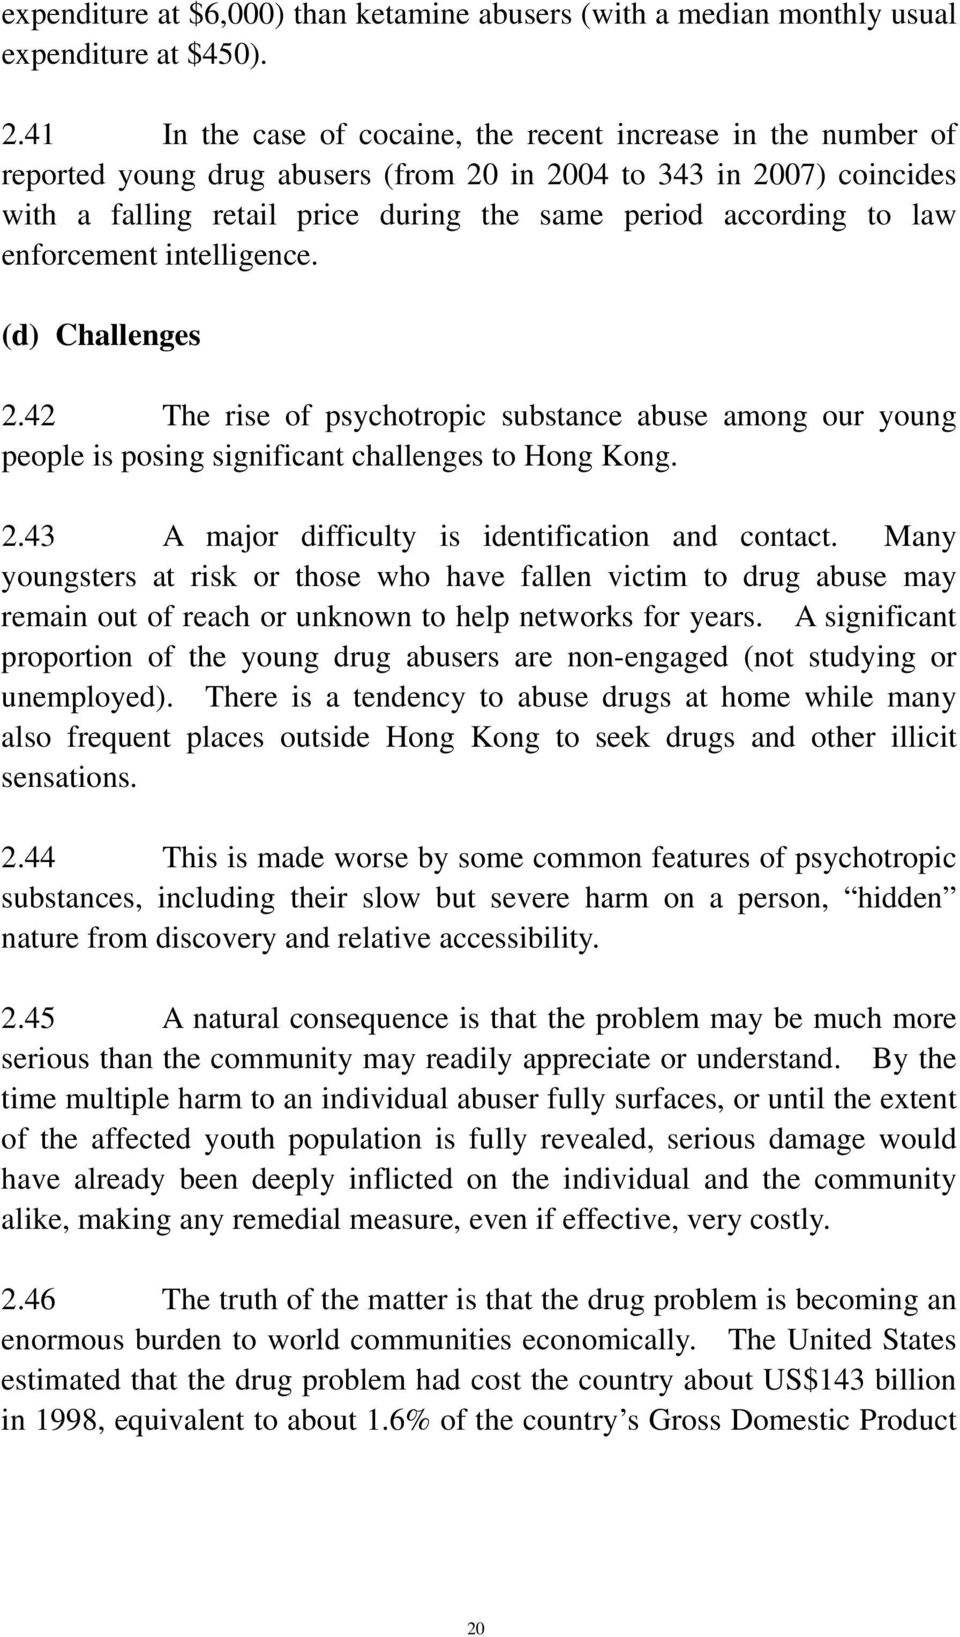 law enforcement intelligence. (d) Challenges 2.42 The rise of psychotropic substance abuse among our young people is posing significant challenges to Hong Kong. 2.43 A major difficulty is identification and contact.